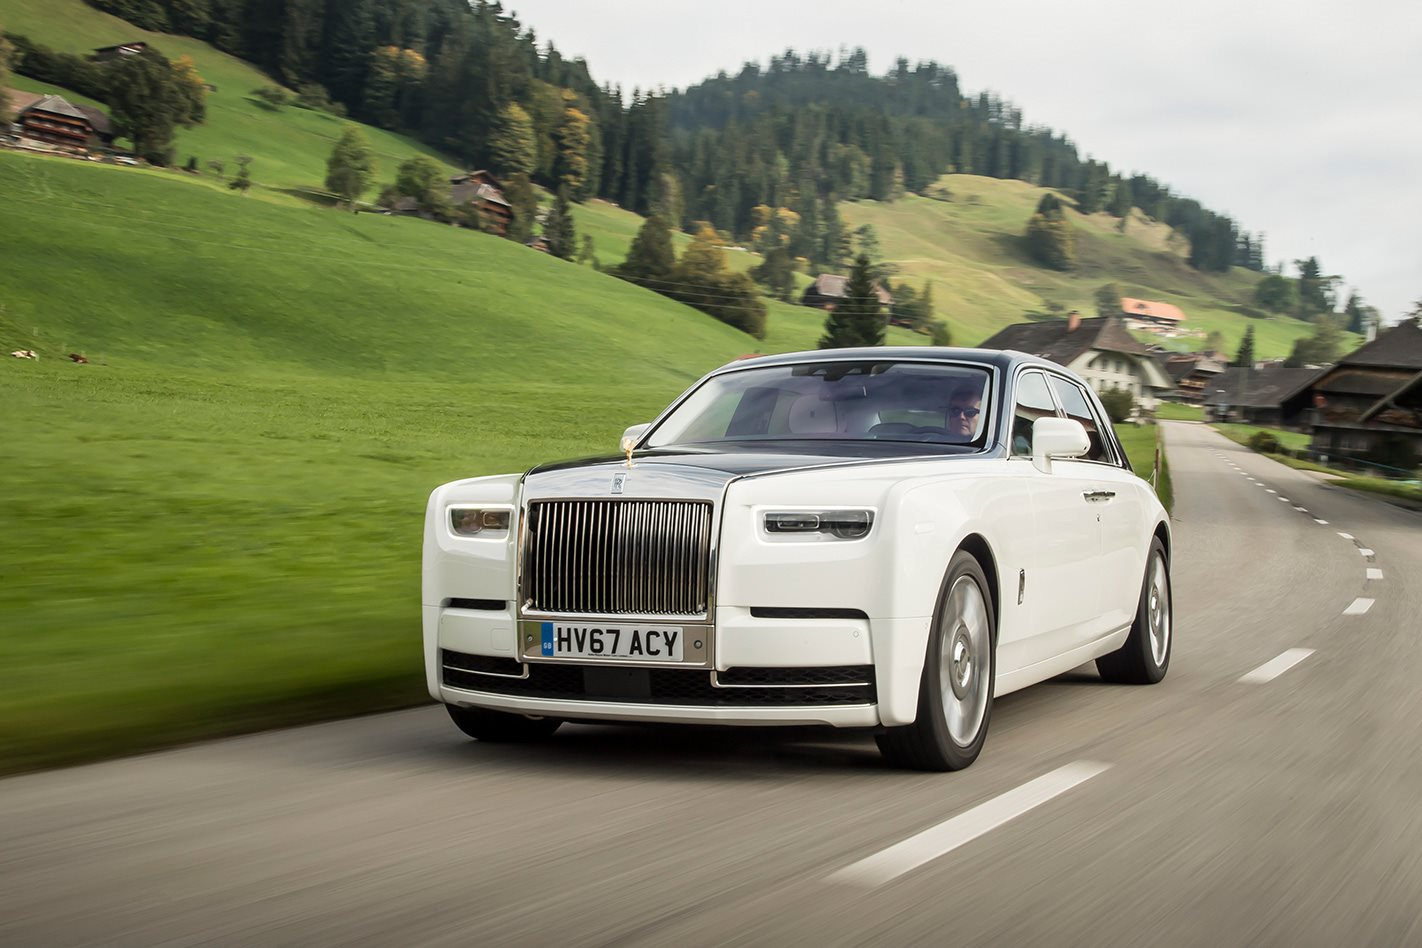 2018 Rolls Royce Phantom Review